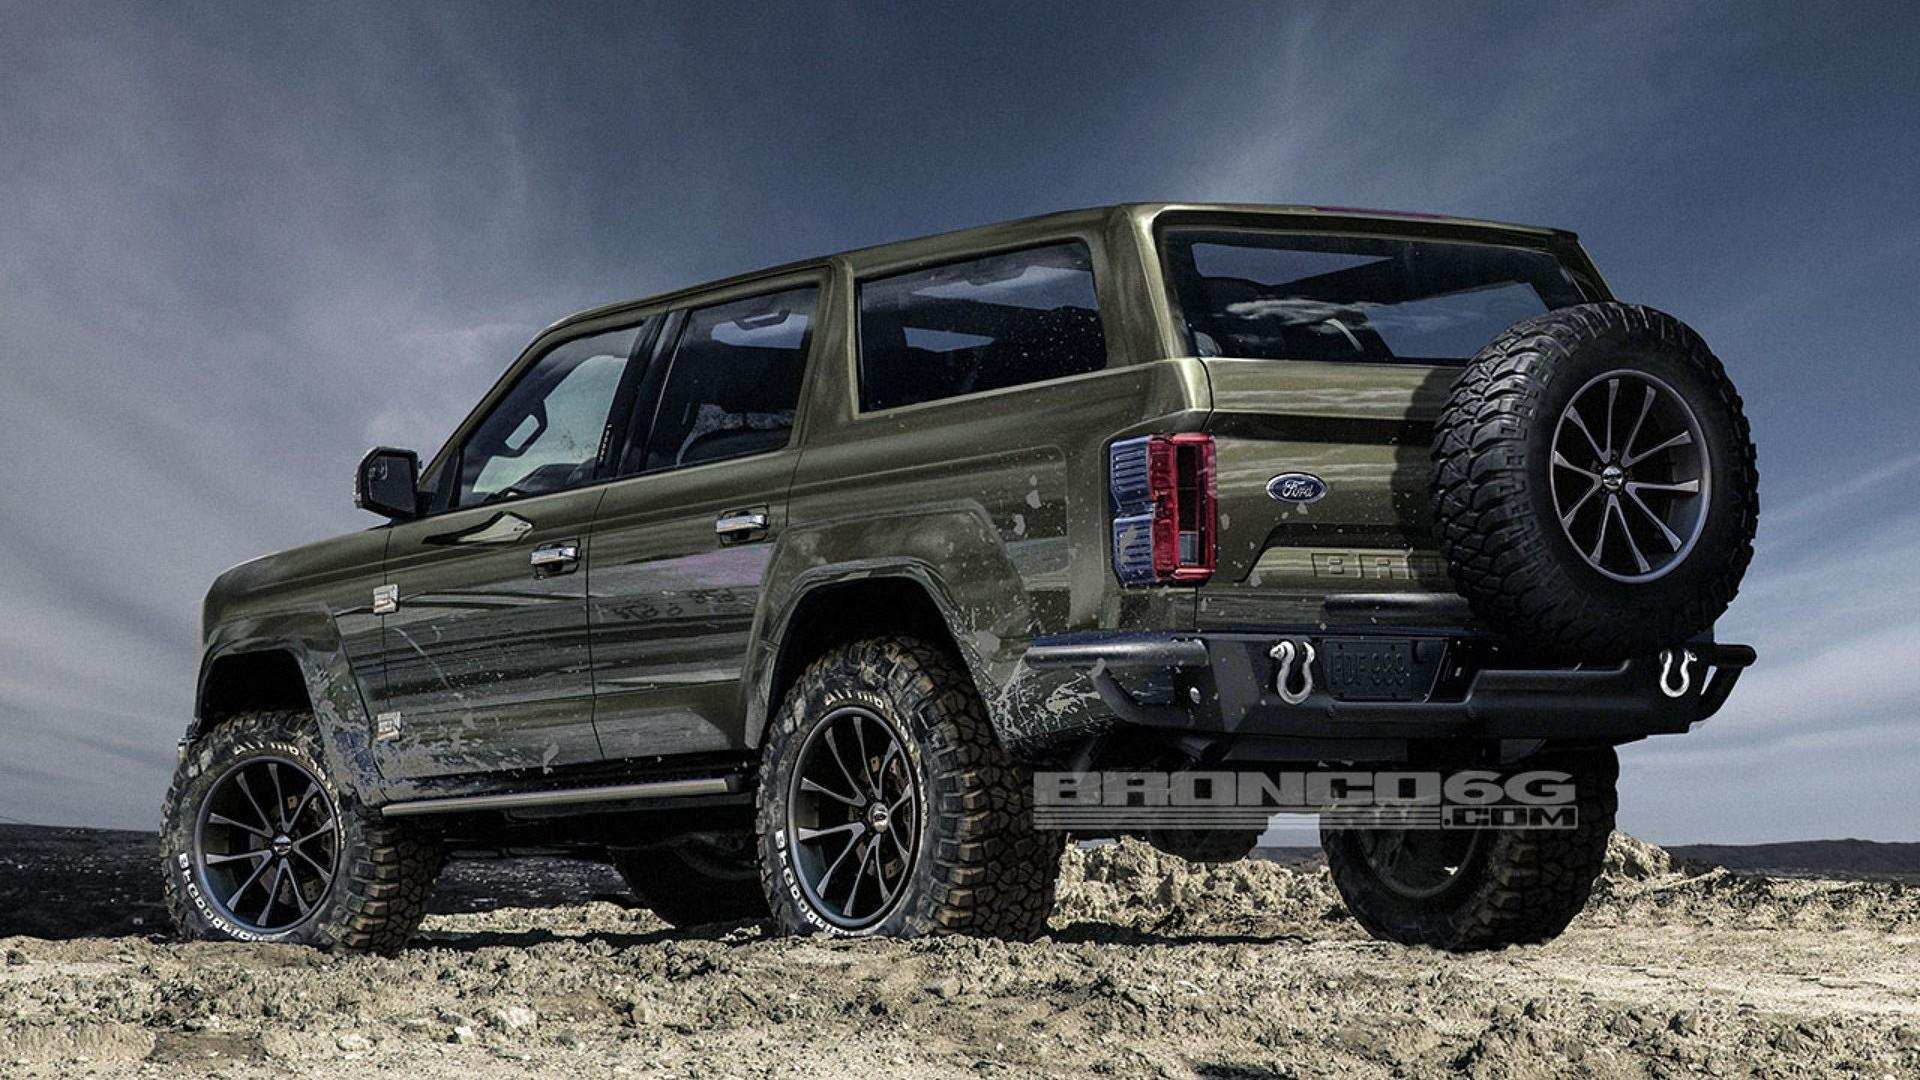 22 Concept of 2020 Ford Bronco 4 Door Price Exterior and Interior by 2020 Ford Bronco 4 Door Price